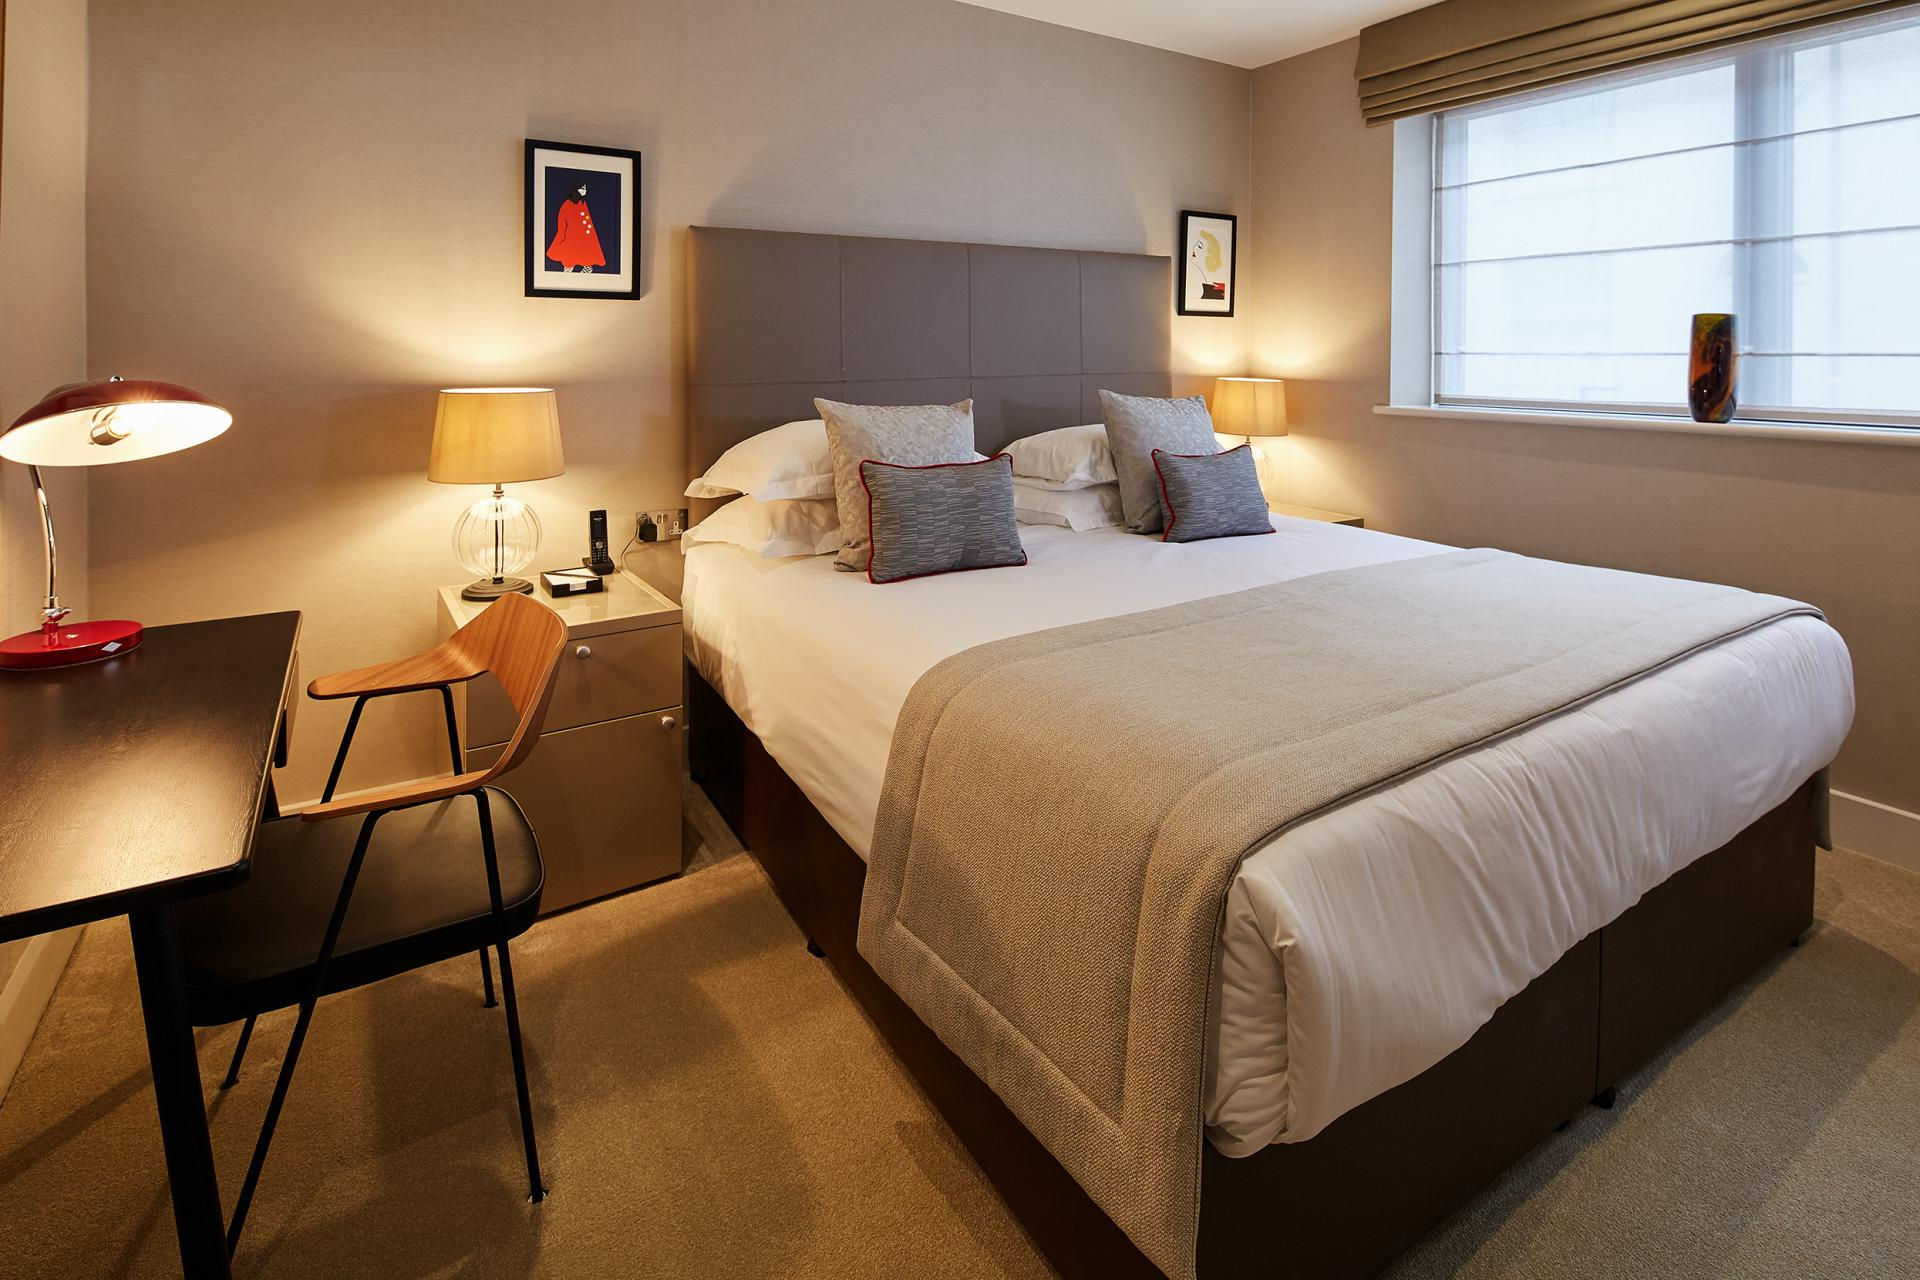 Bedroom at 29-31 Cheval Place Apartments, Knightsbridge, London - Citybase Apartments